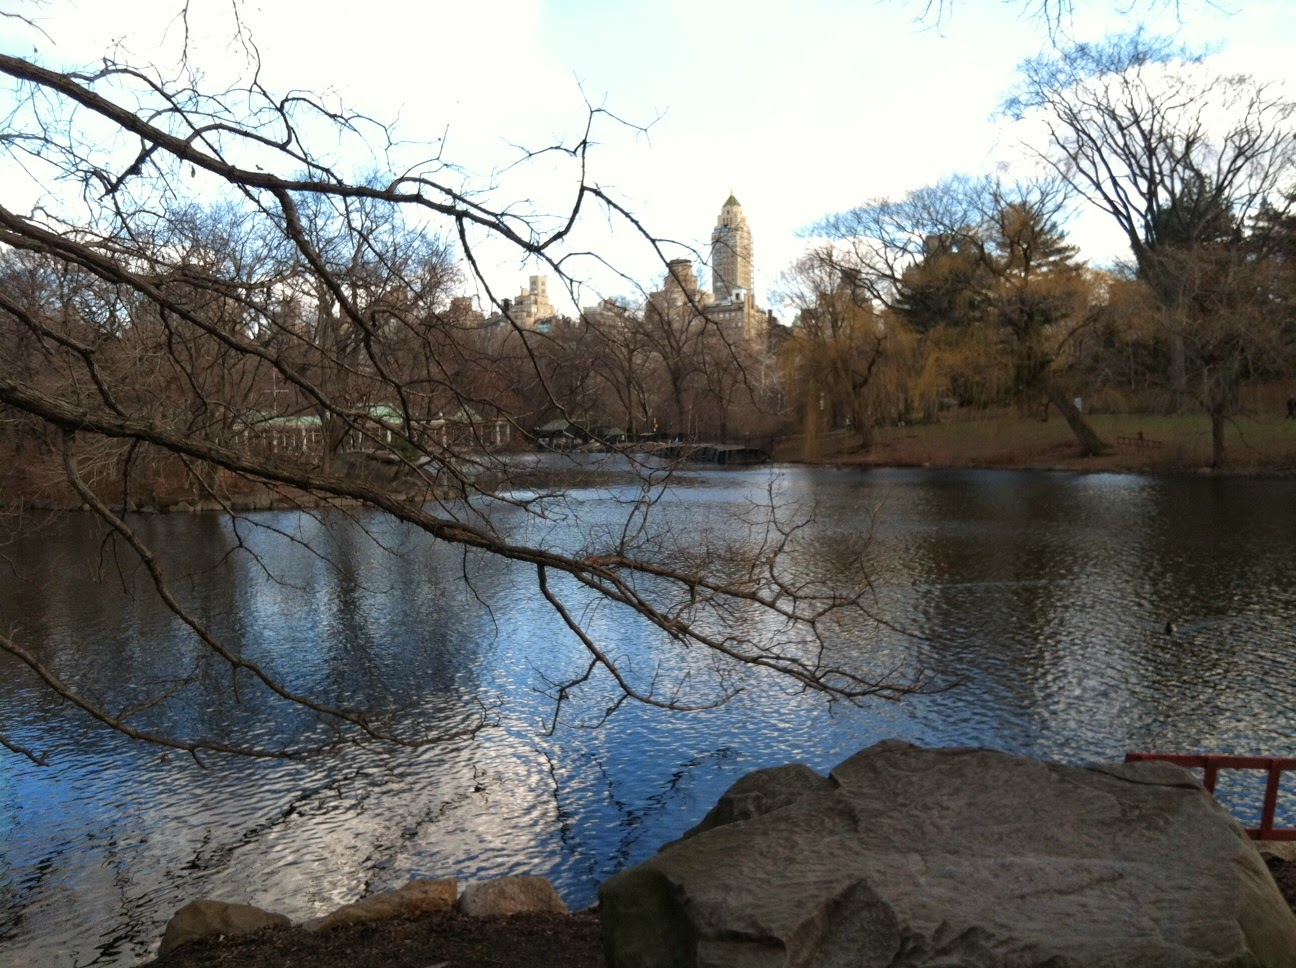 View of Central Park by Maja Trochimczyk